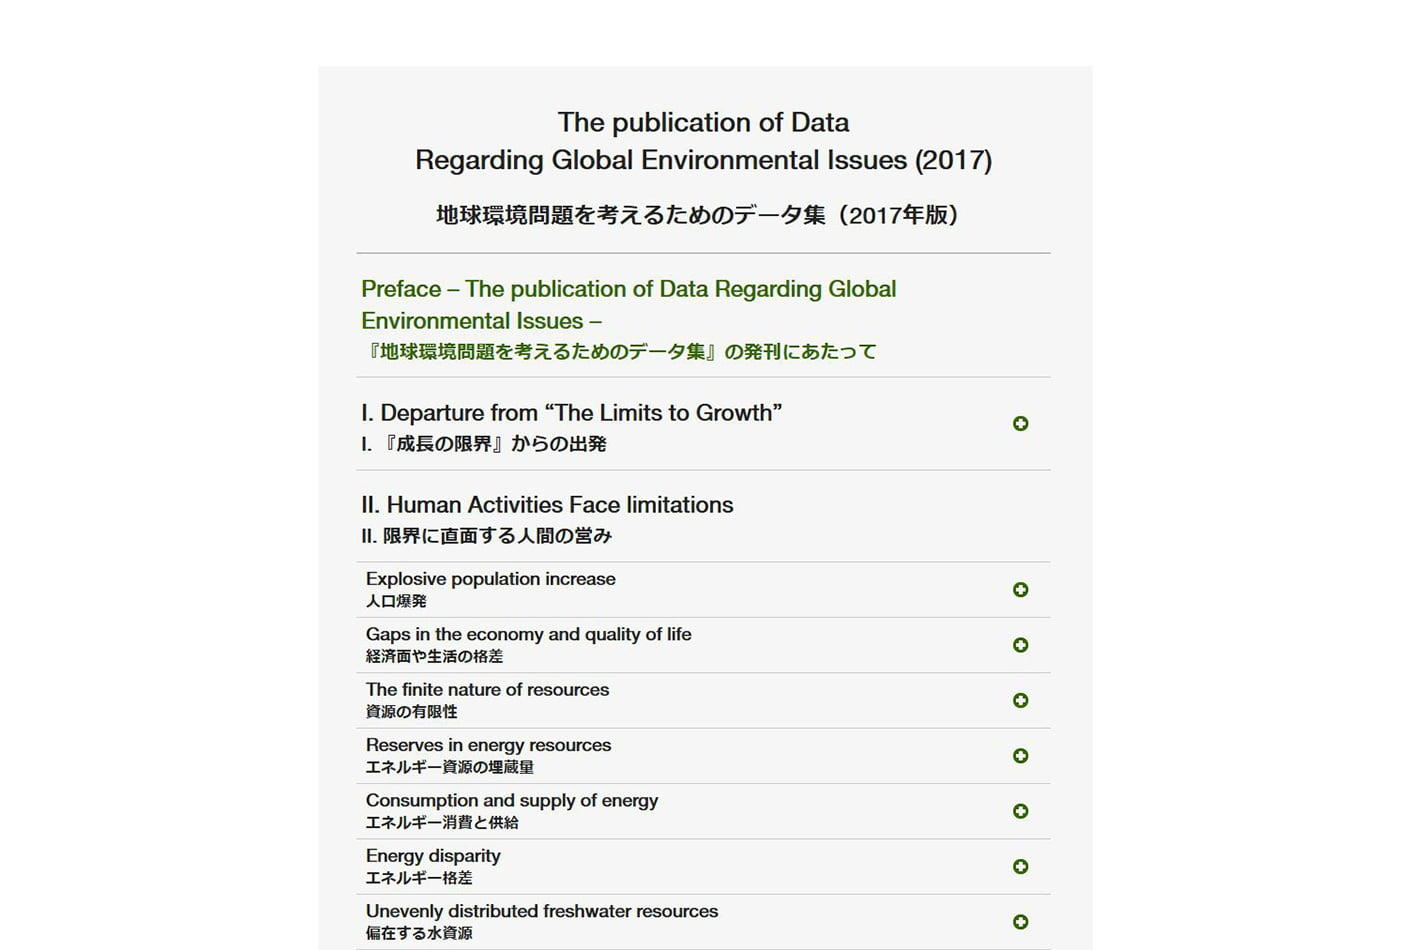 The publication of Data Regarding Global Environmental Issues (2017)